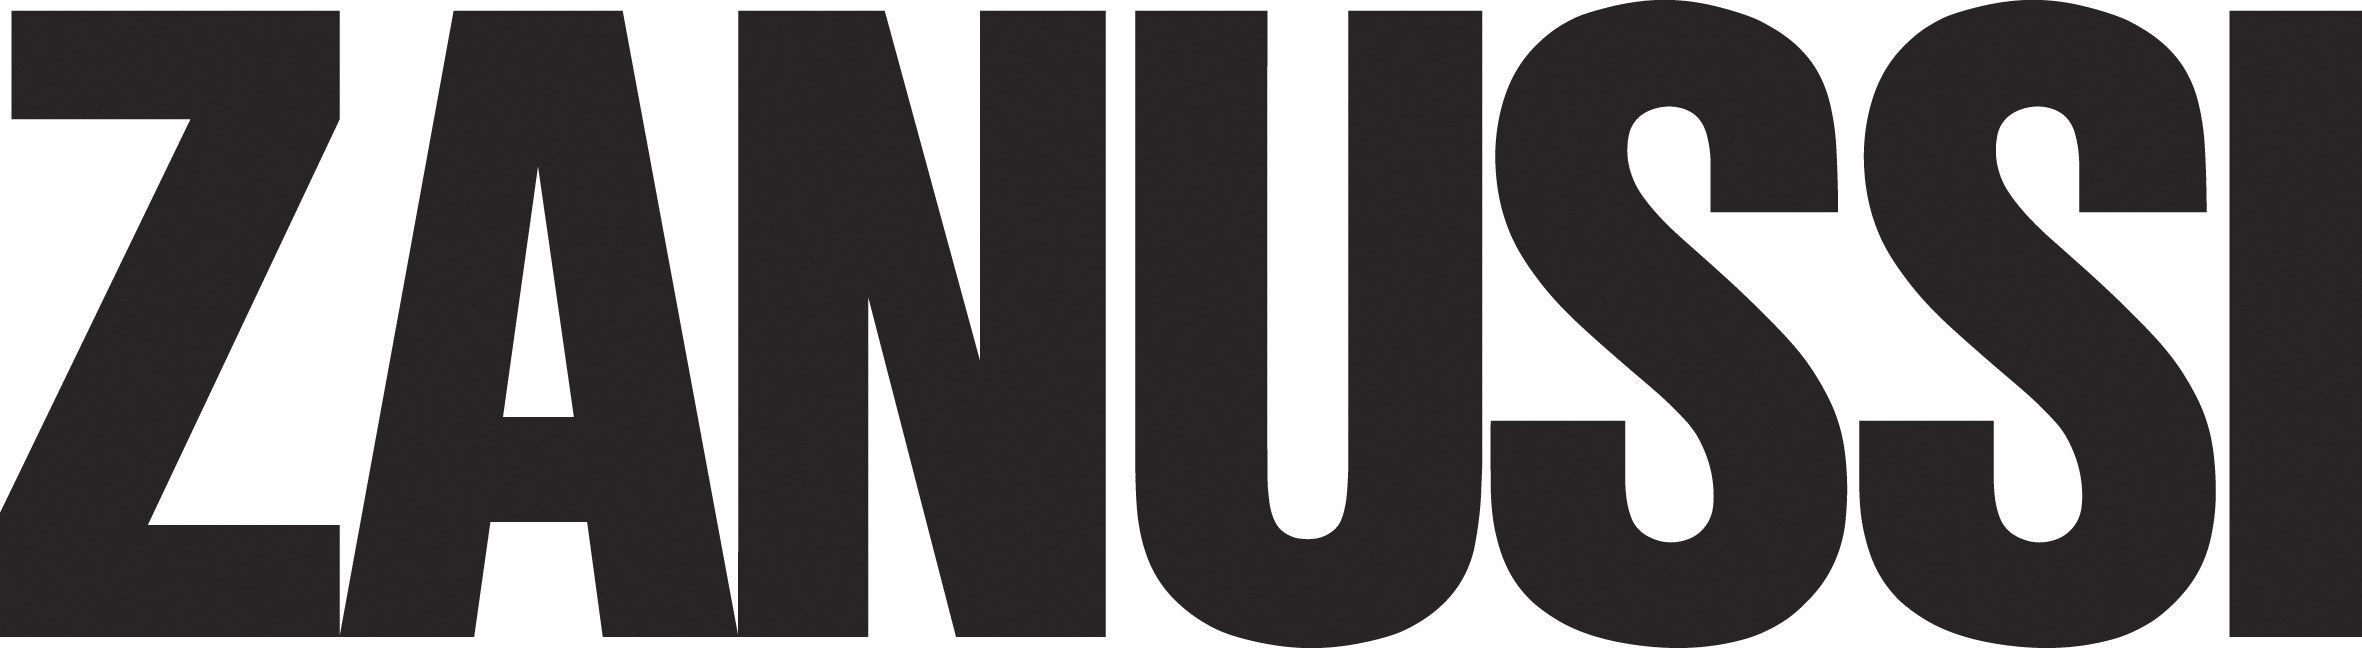 Zanussi-Logo-Black_No-Flag.jpg